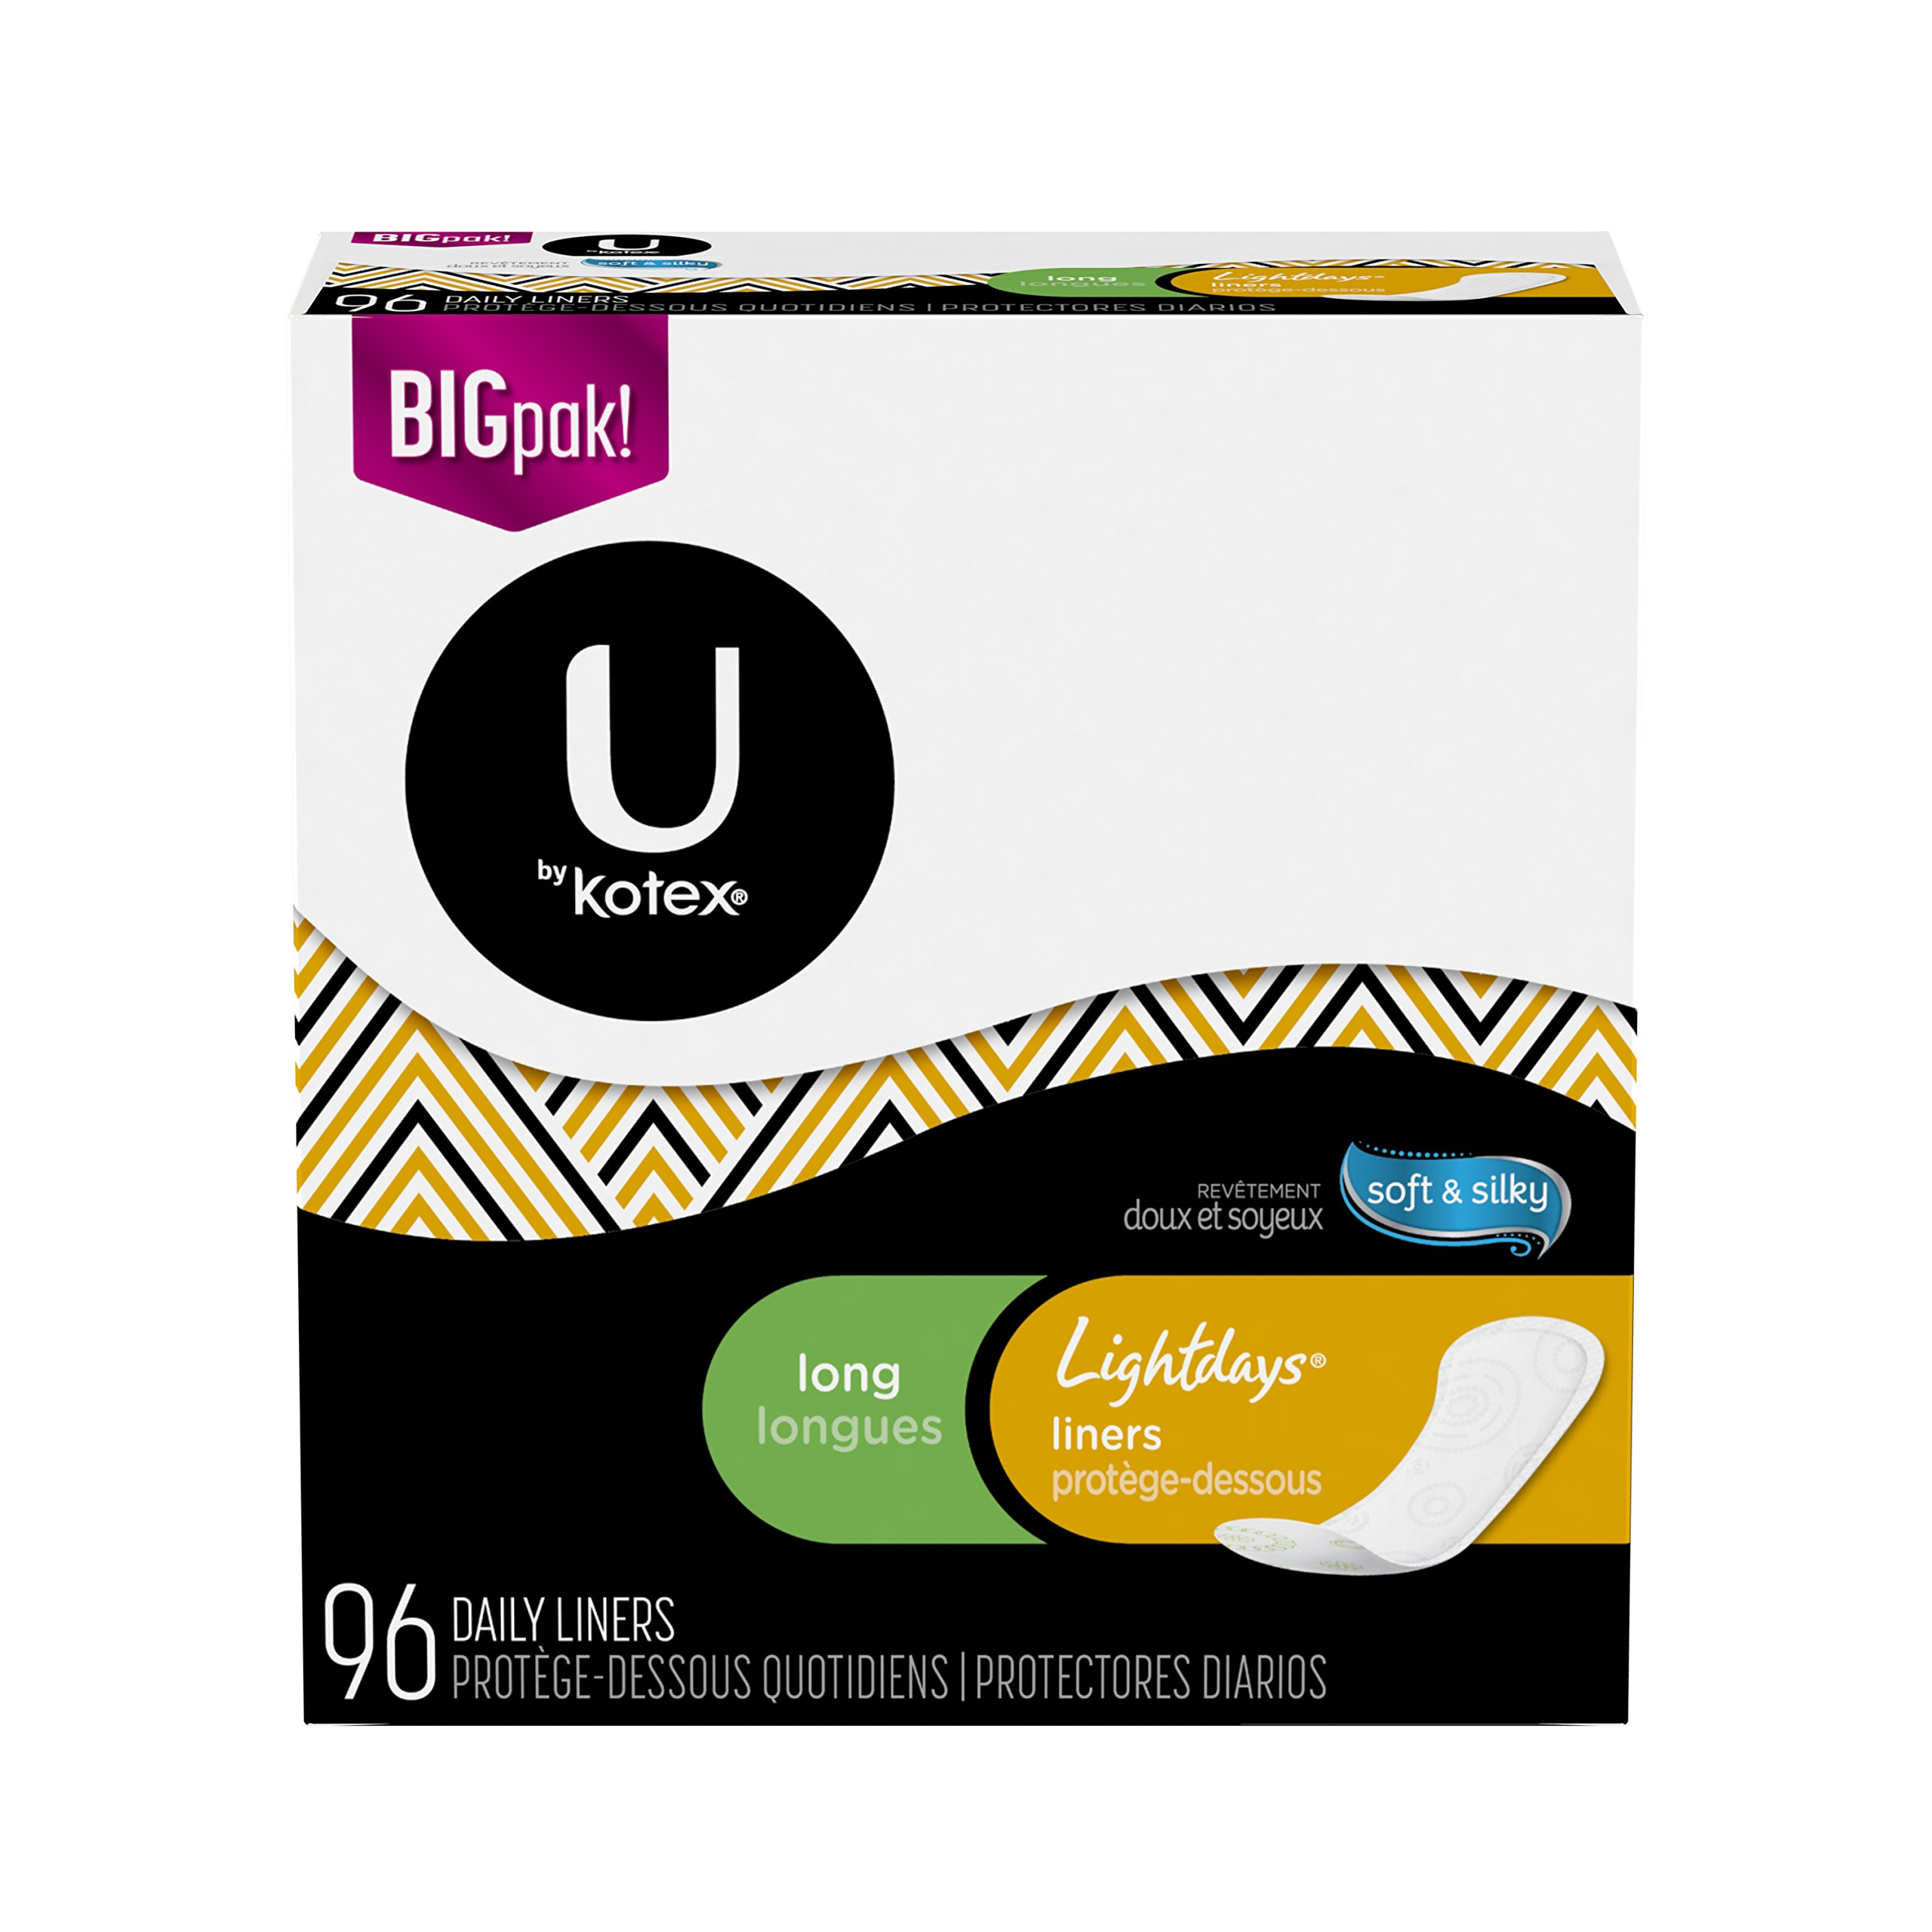 U by Kotex Lightdays Liners, Long, Unscented, 96 Count, Pack of 5 (480 Count Total)